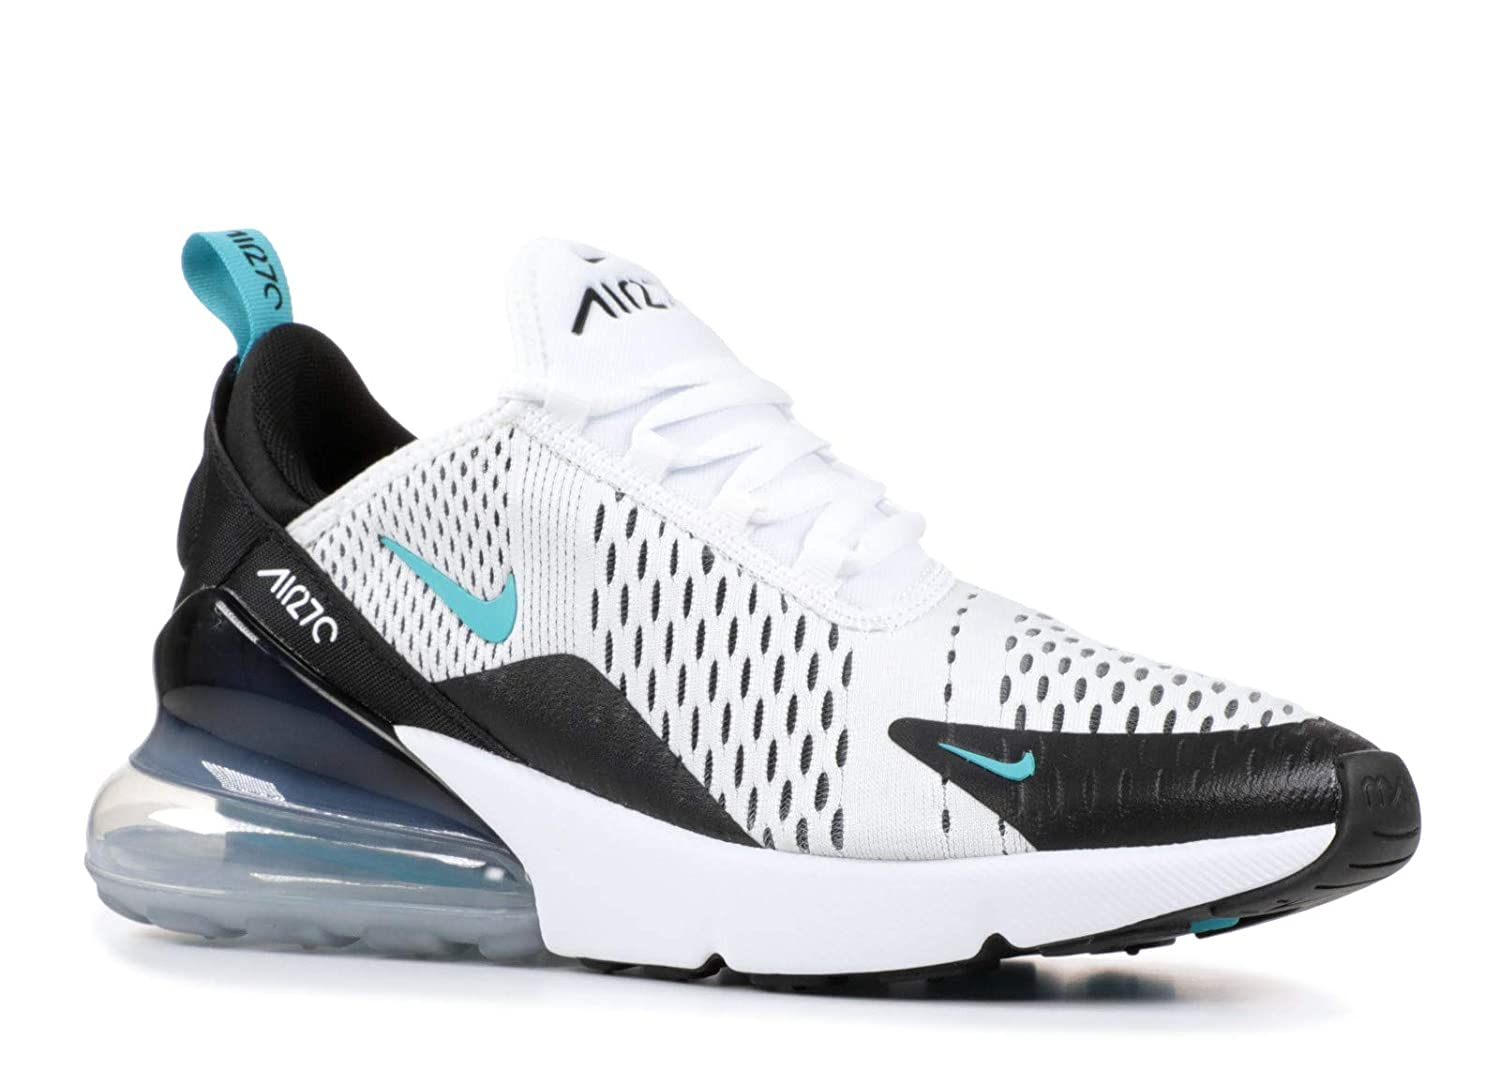 save off 27cf2 bfe44 NIKE Kid's Air Max 270 GS, White/Dusty Cactus-Black, Youth Size 7